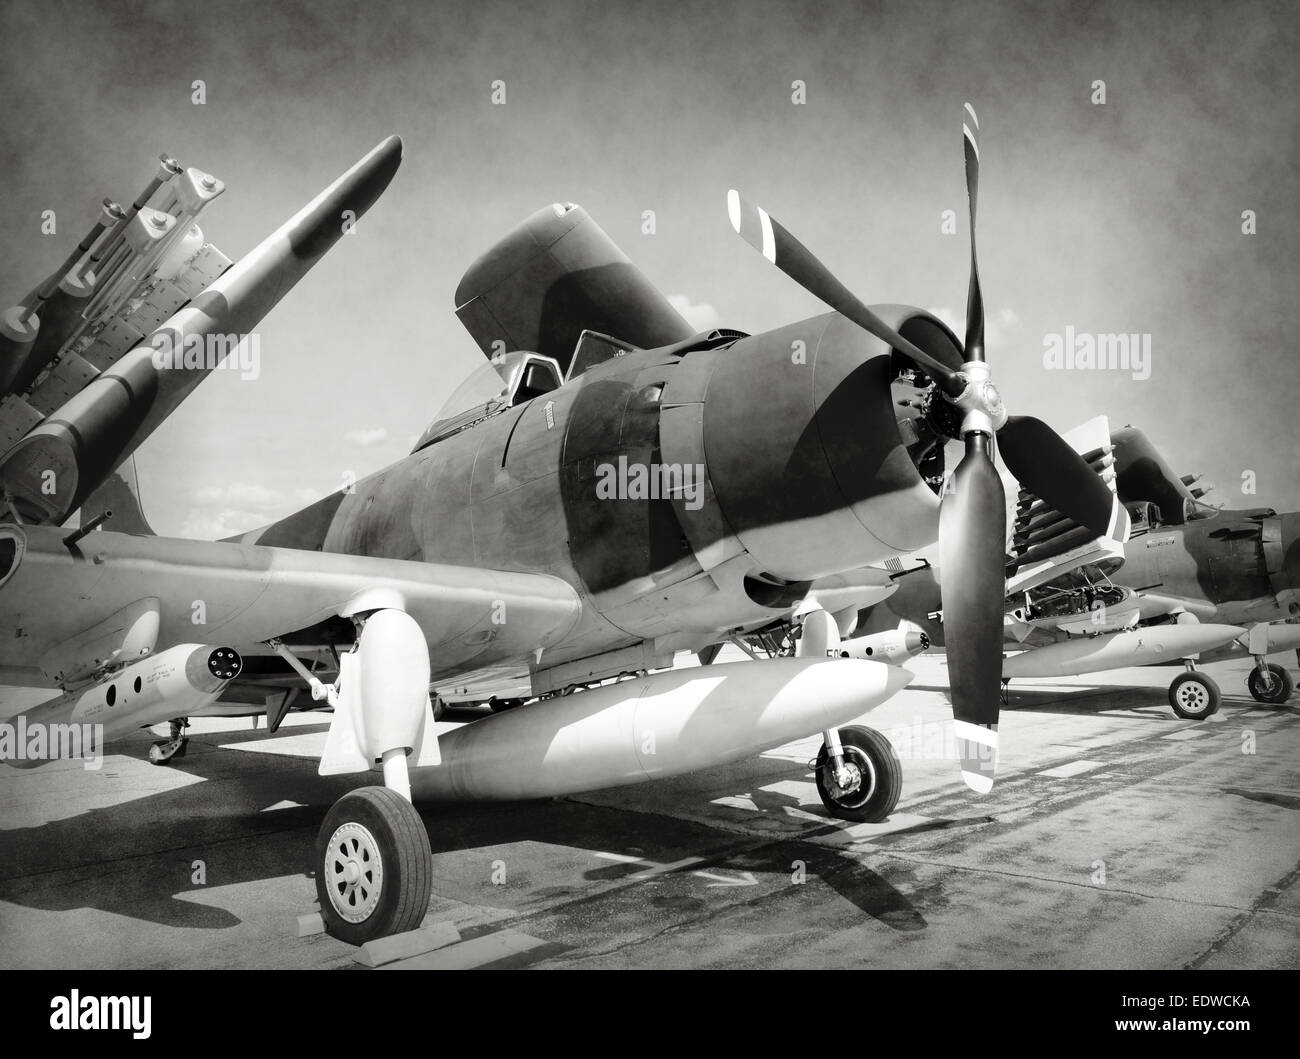 World War II era fighter planes in stained old photo - Stock Image